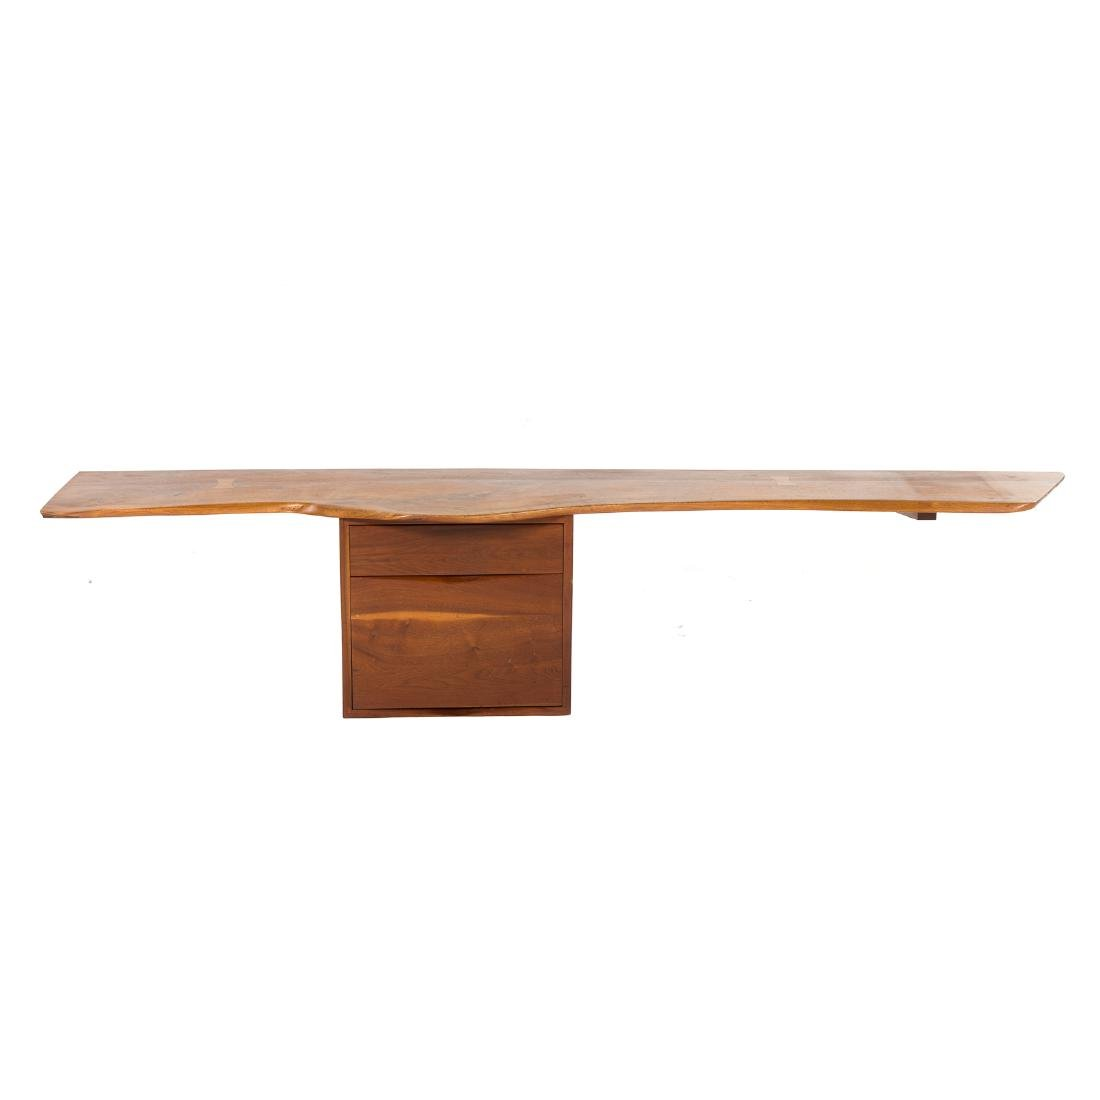 Phillip Lloyd Powell Wall-Mounted Desk and Shelves - 2